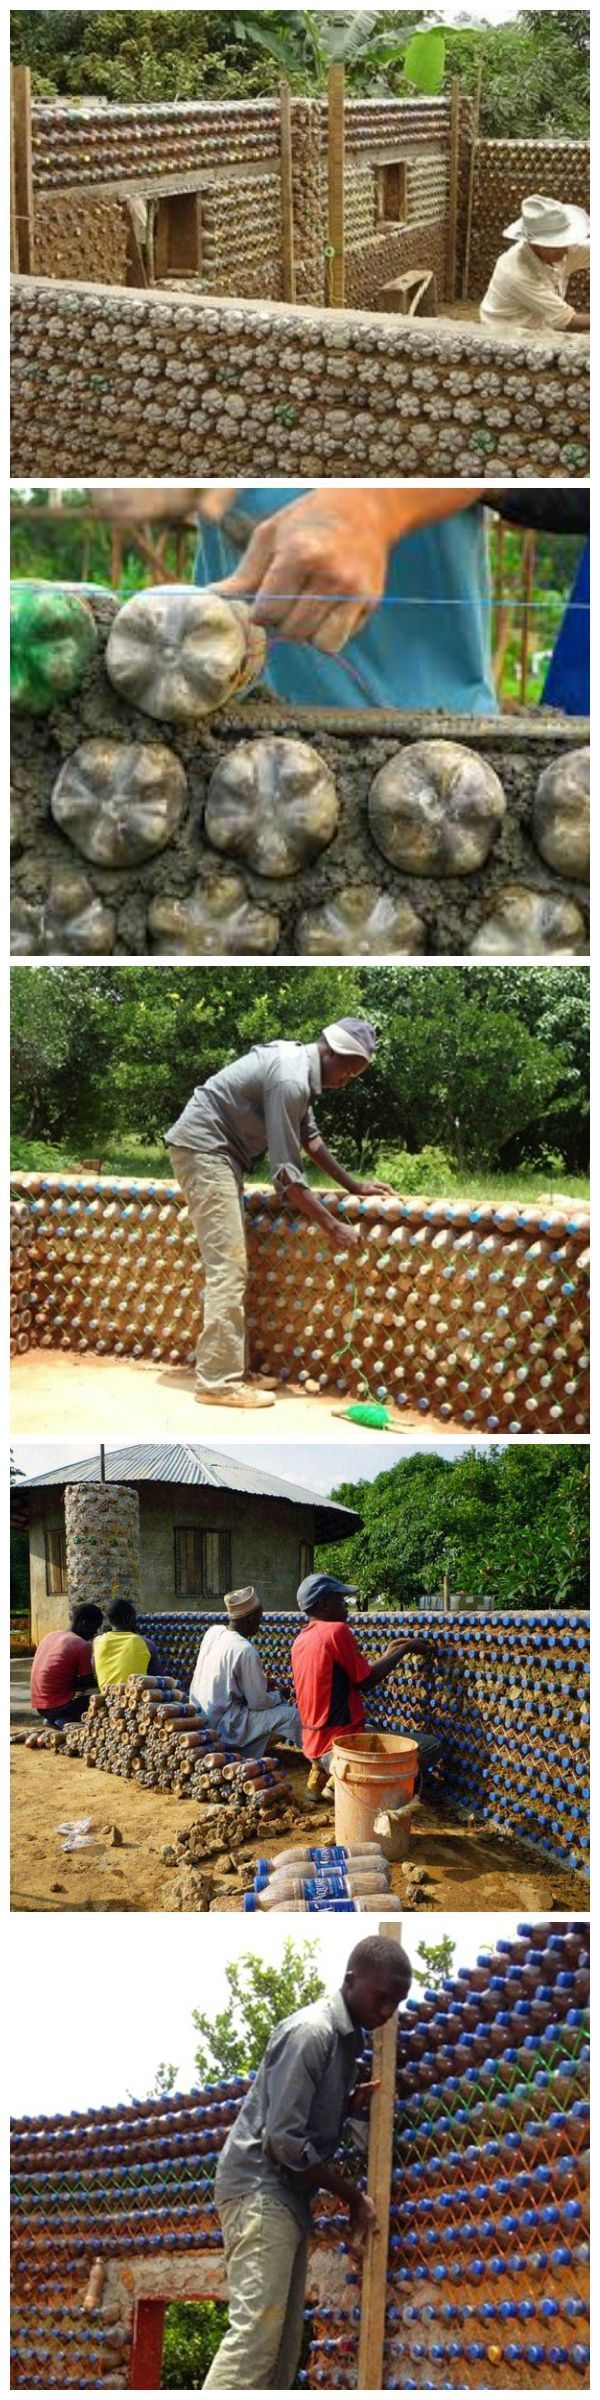 How to Construct Houses with Plastic Bottles  Green design  Pinterest  인형의 ...